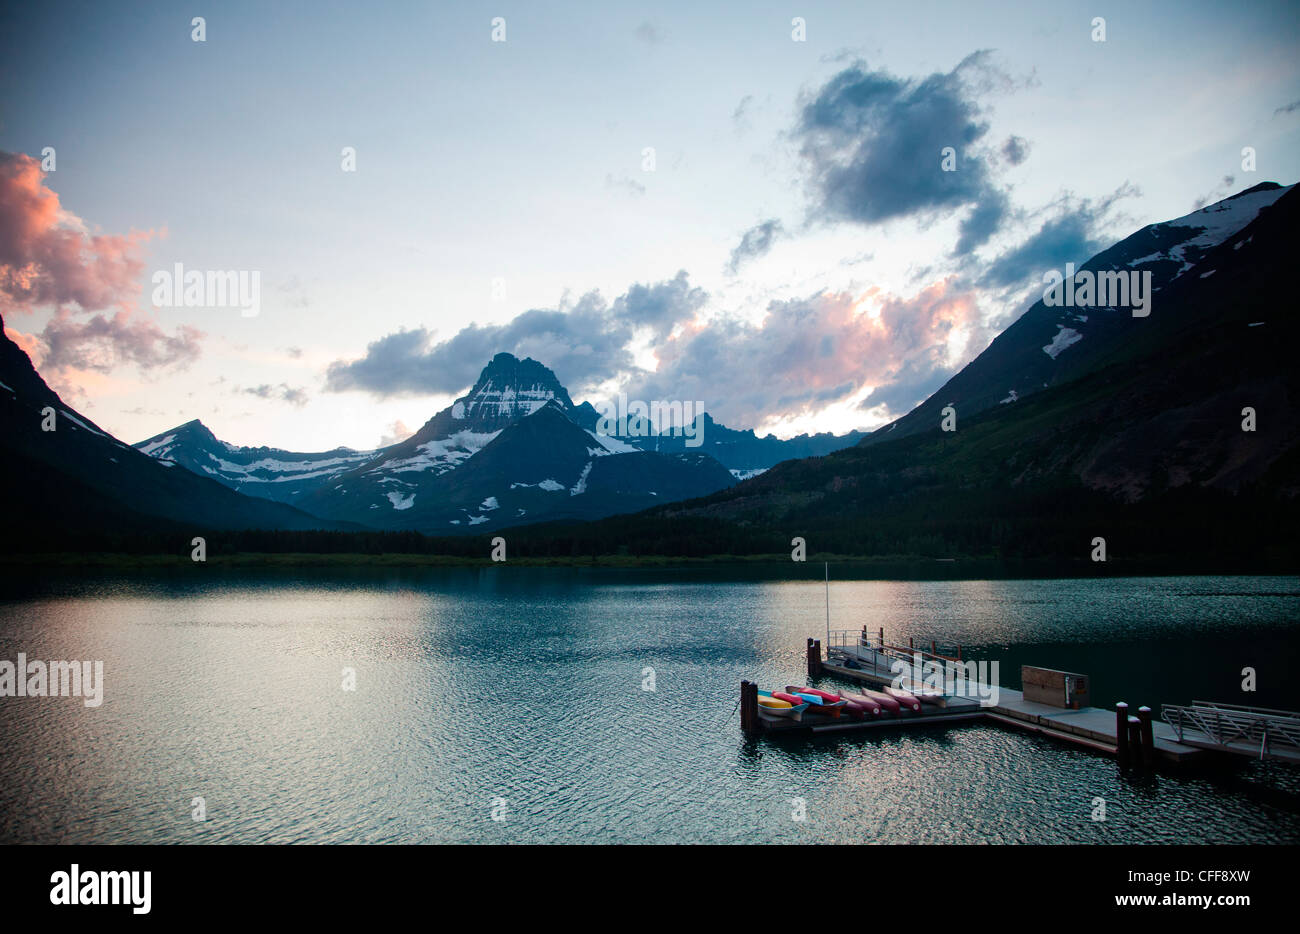 A lake with a dock and kayaks at dusk in a national park. - Stock Image